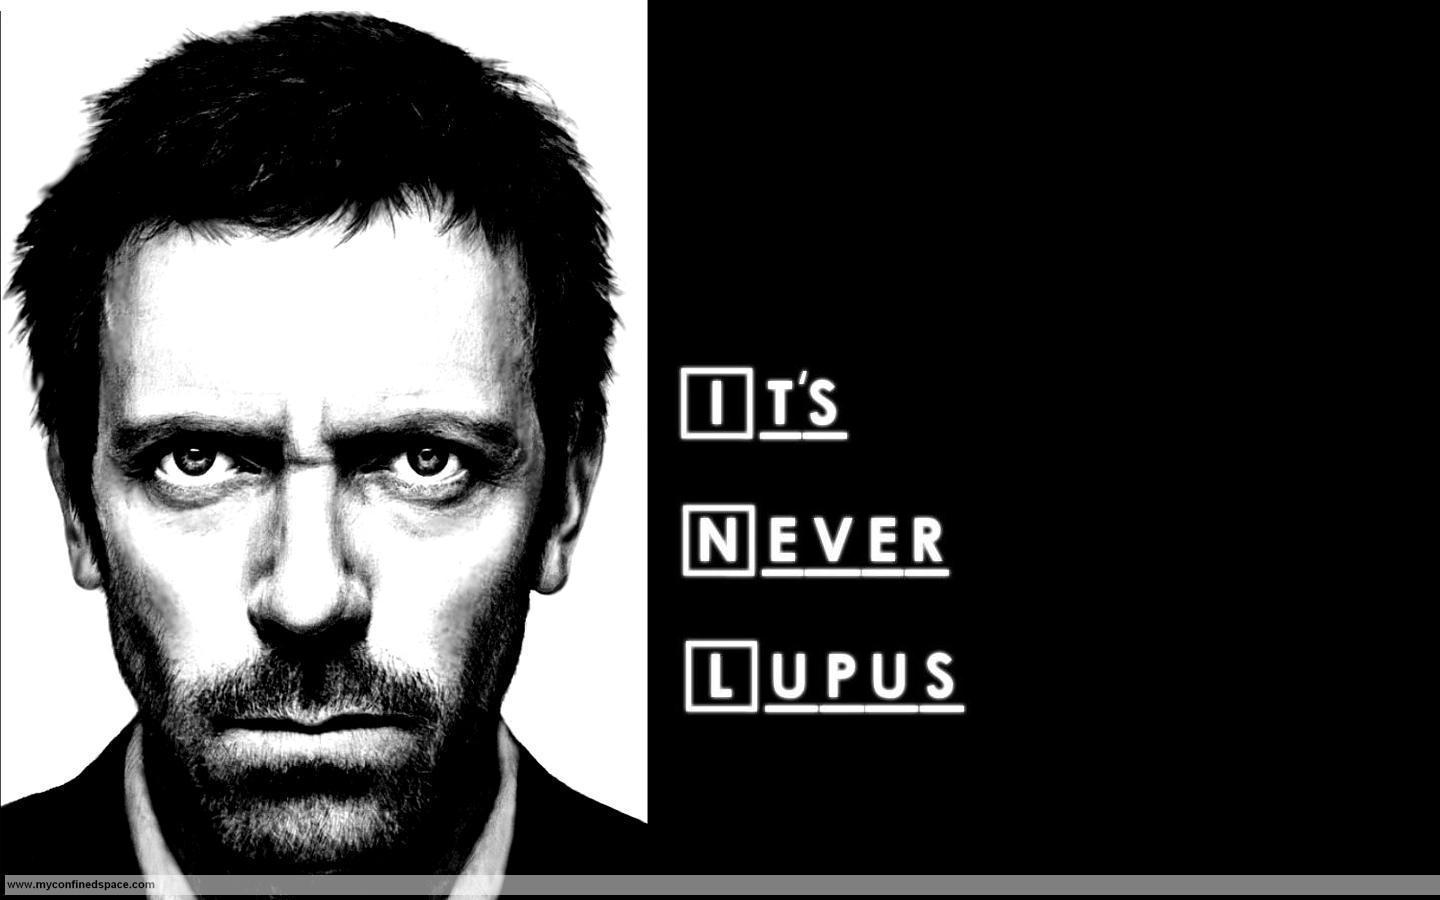 Dr House Wallpaper 1440x900 Dr House Lupus Hugh Laurie Gregory 1440x900